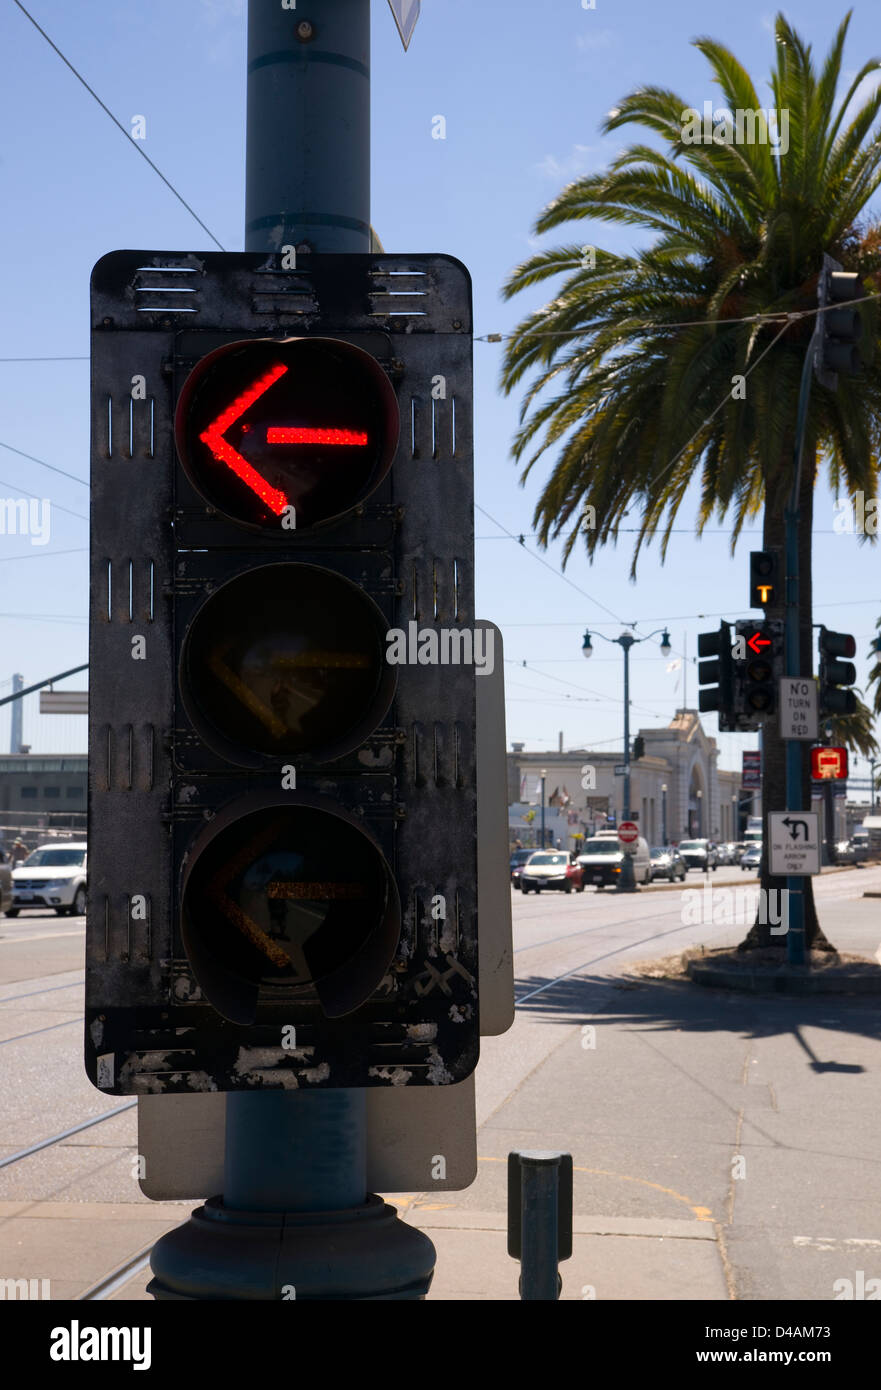 Attractive 3 Way Left Turn Signal Street Traffic Controller Device Downtown City  Corner Currently Showing Red Arrow Ideas